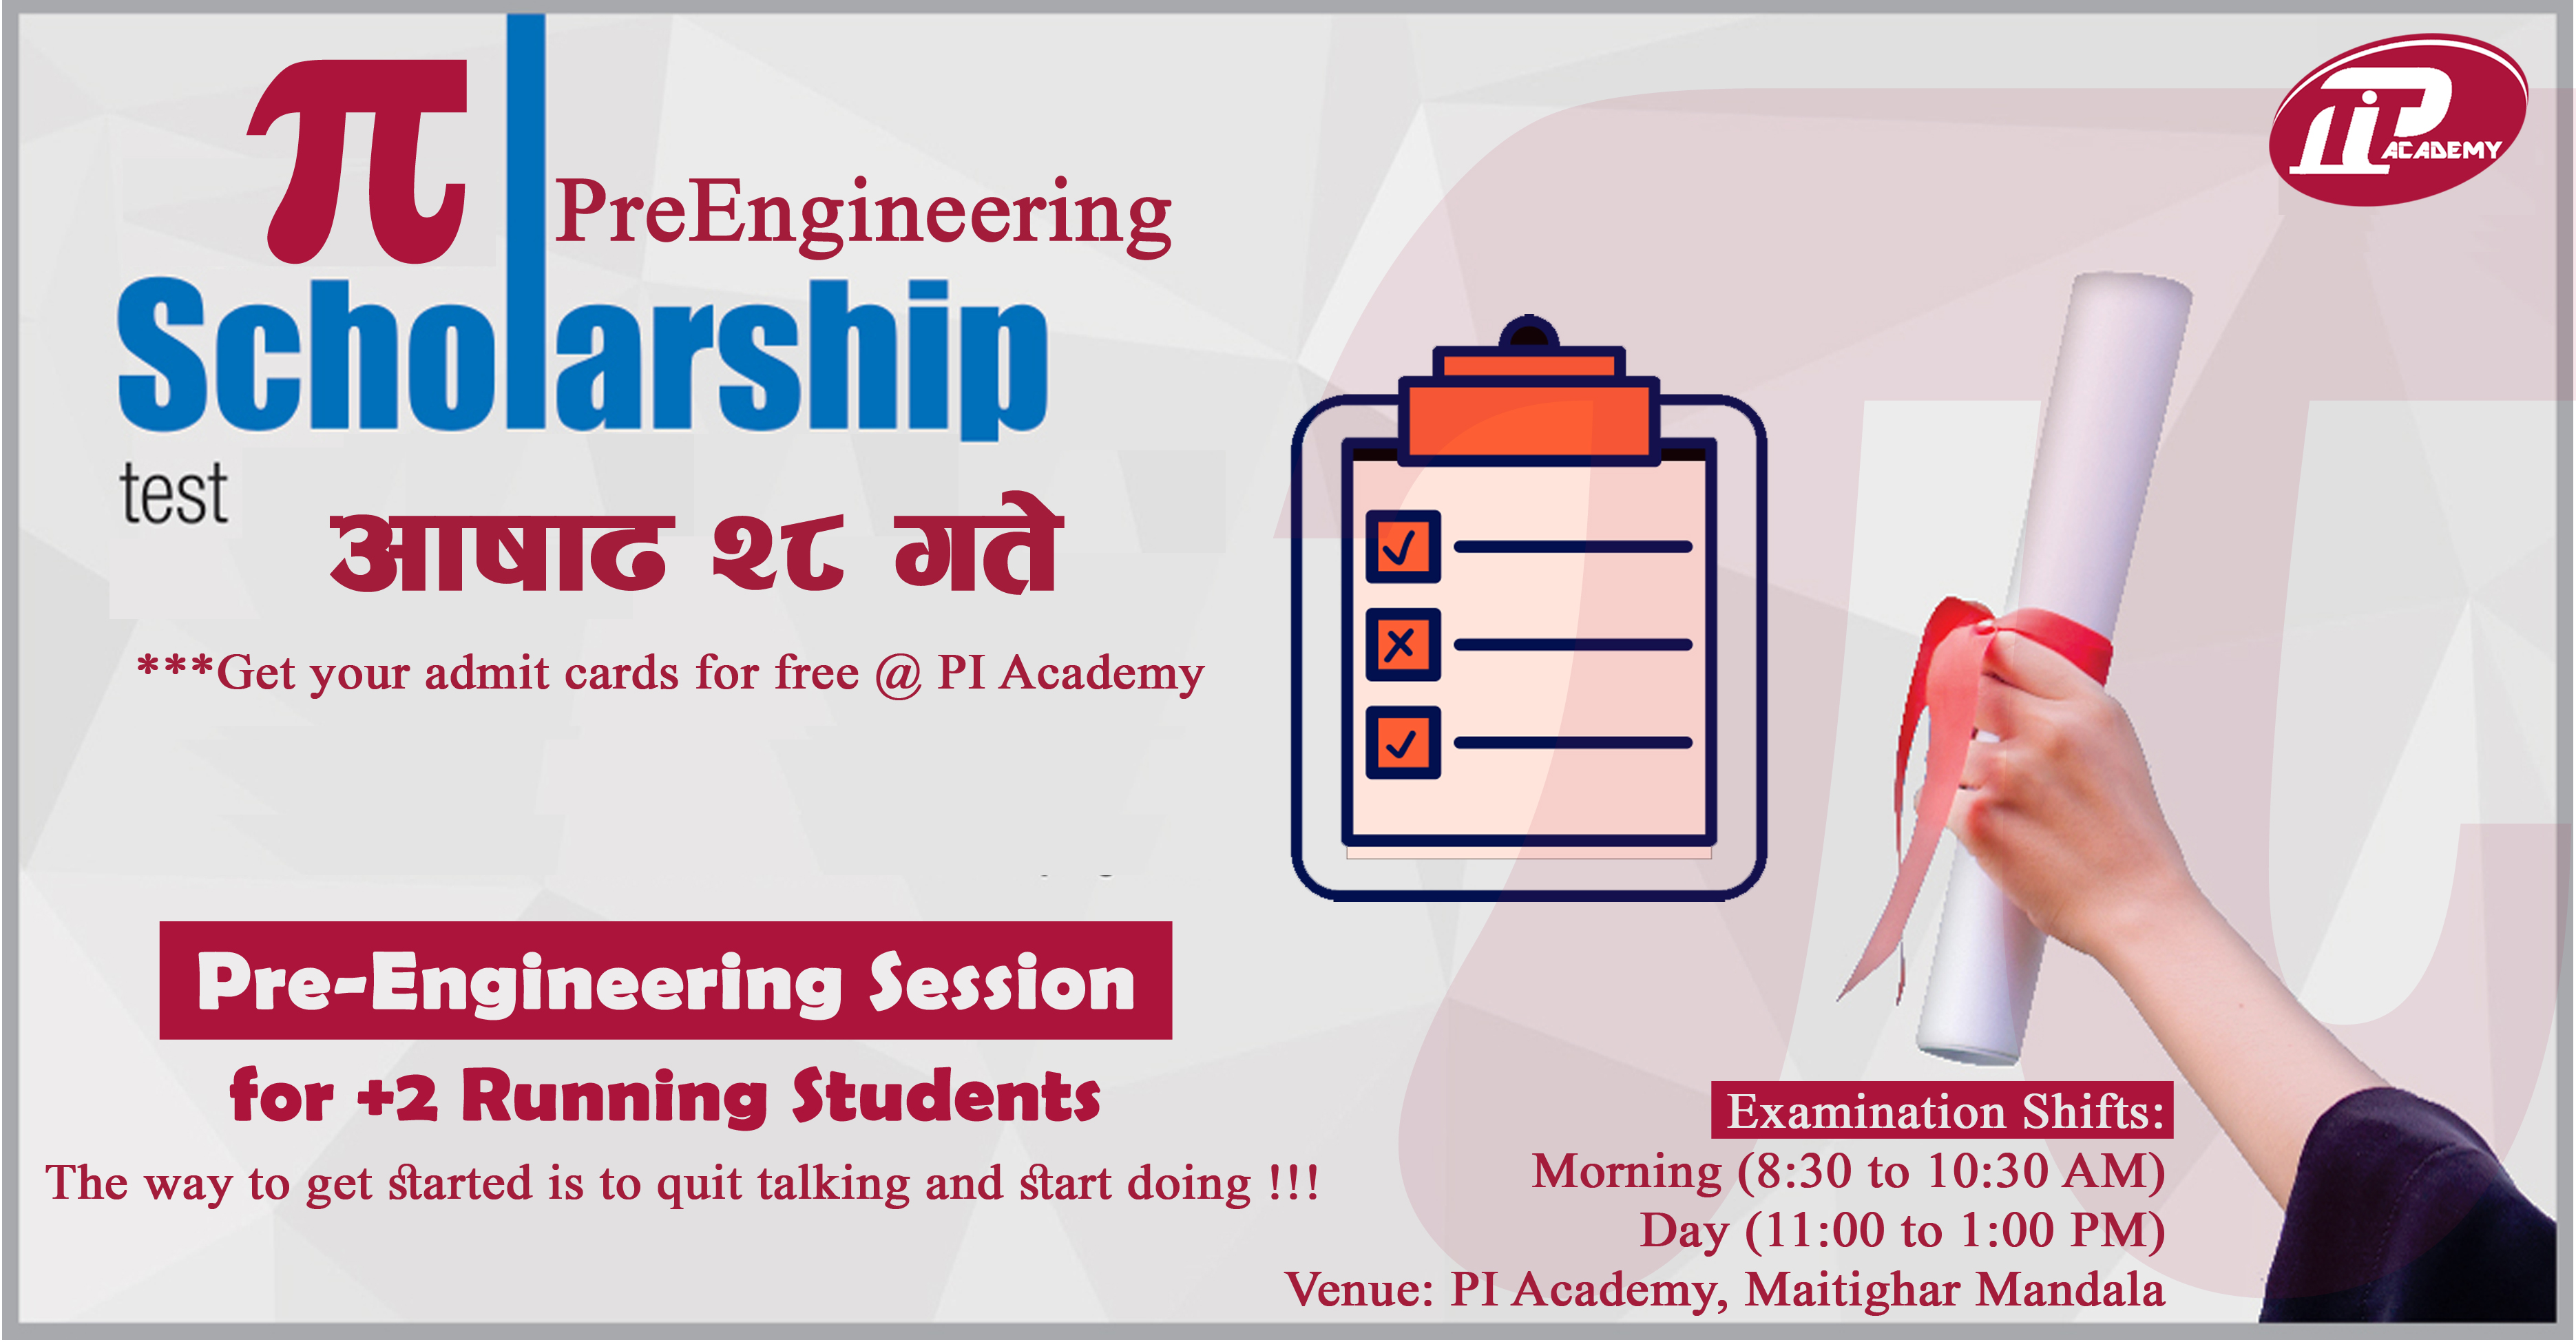 Image from notice Pre-Engineering Scholarship Test Notice